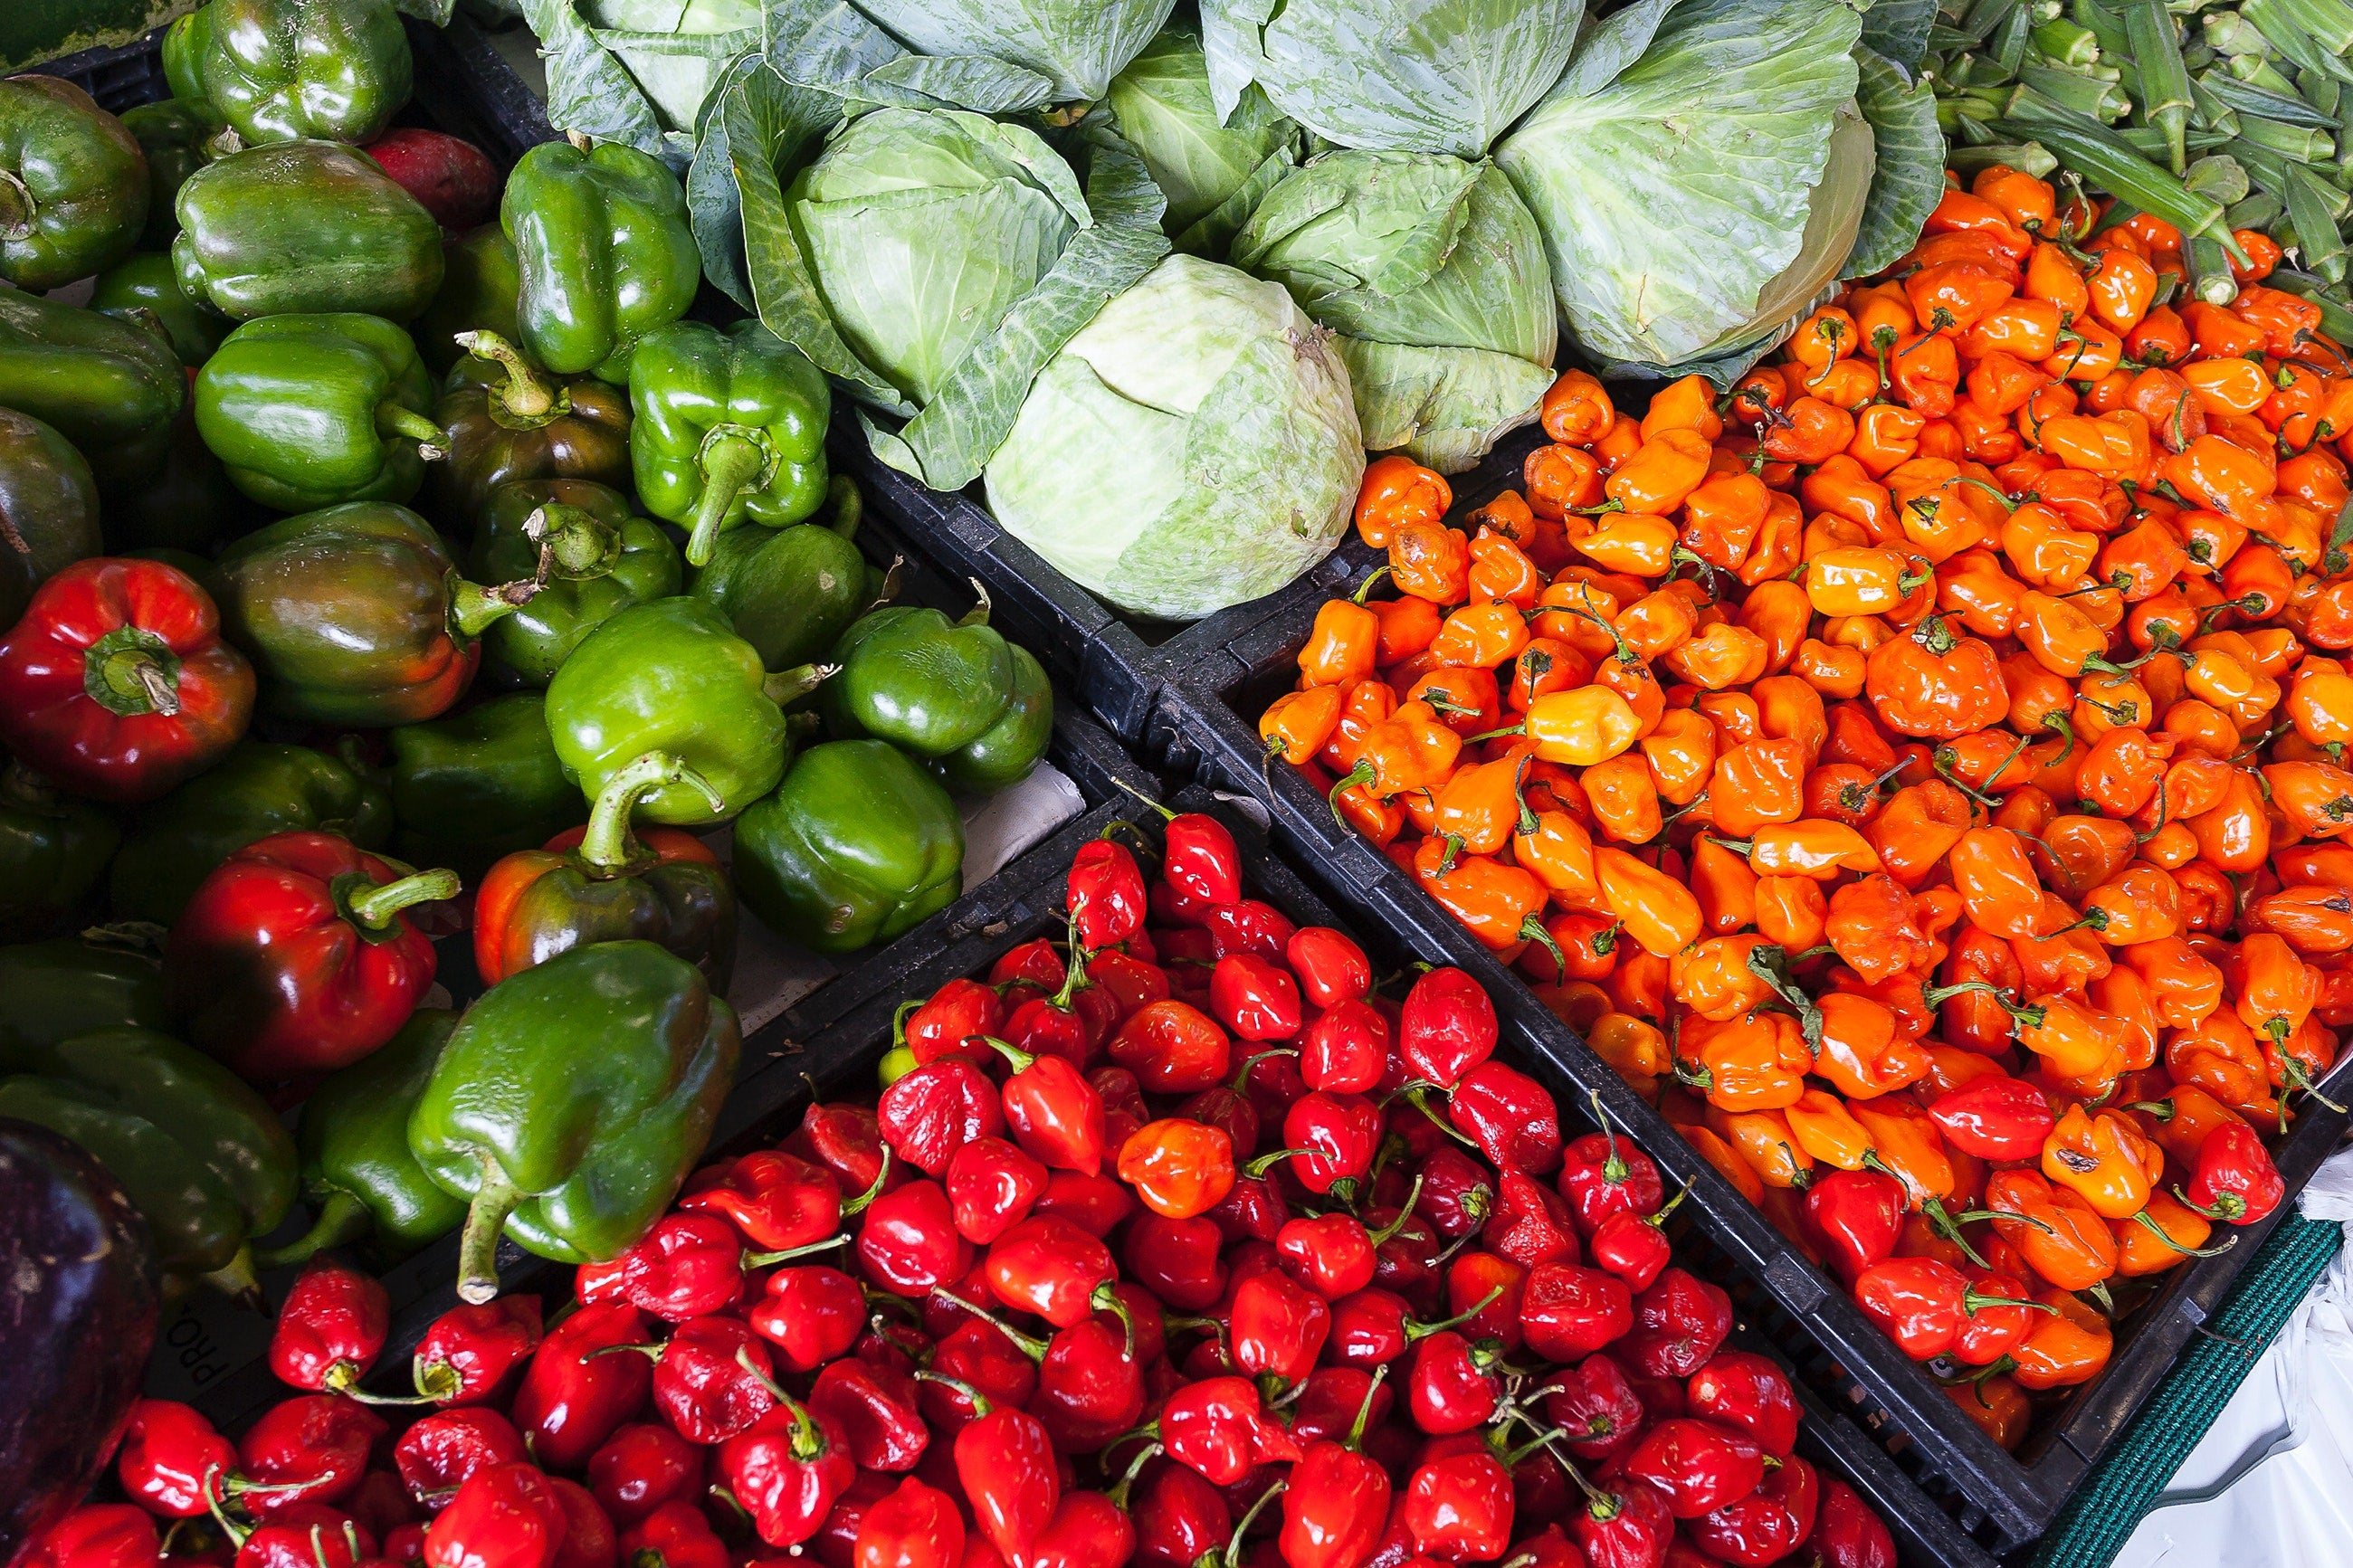 Image of colorful vegetables